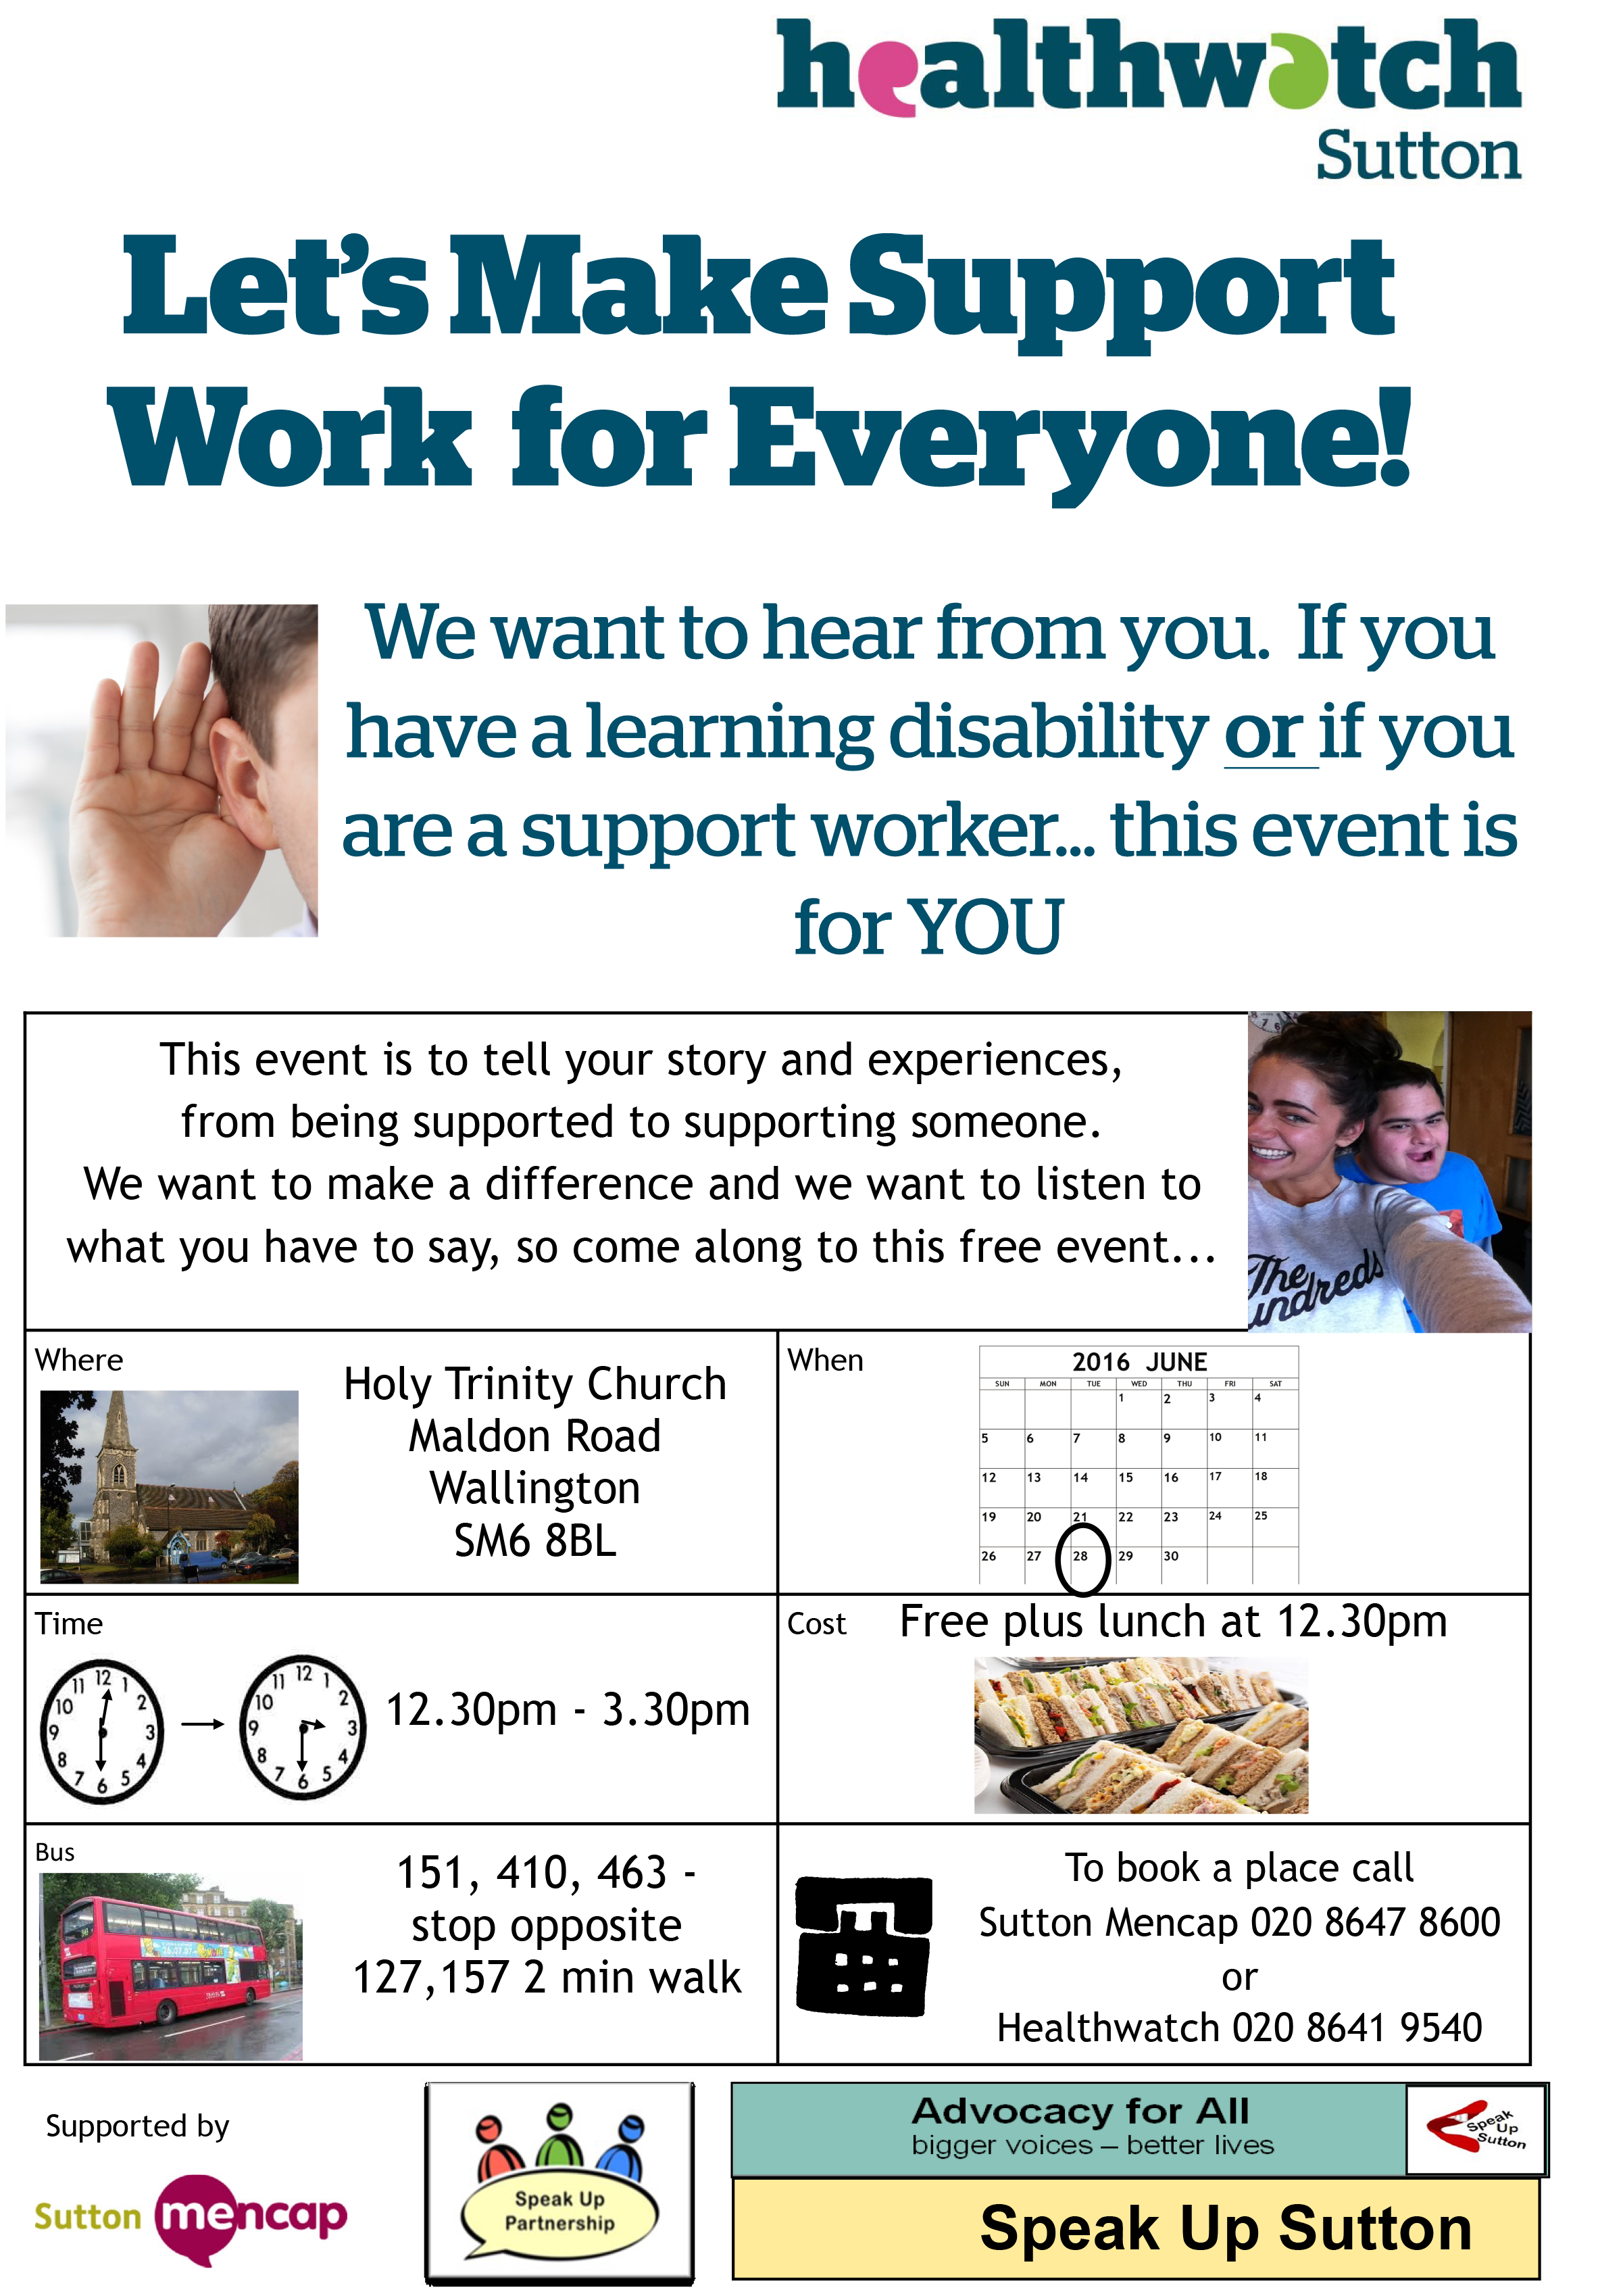 Let make support work flyer